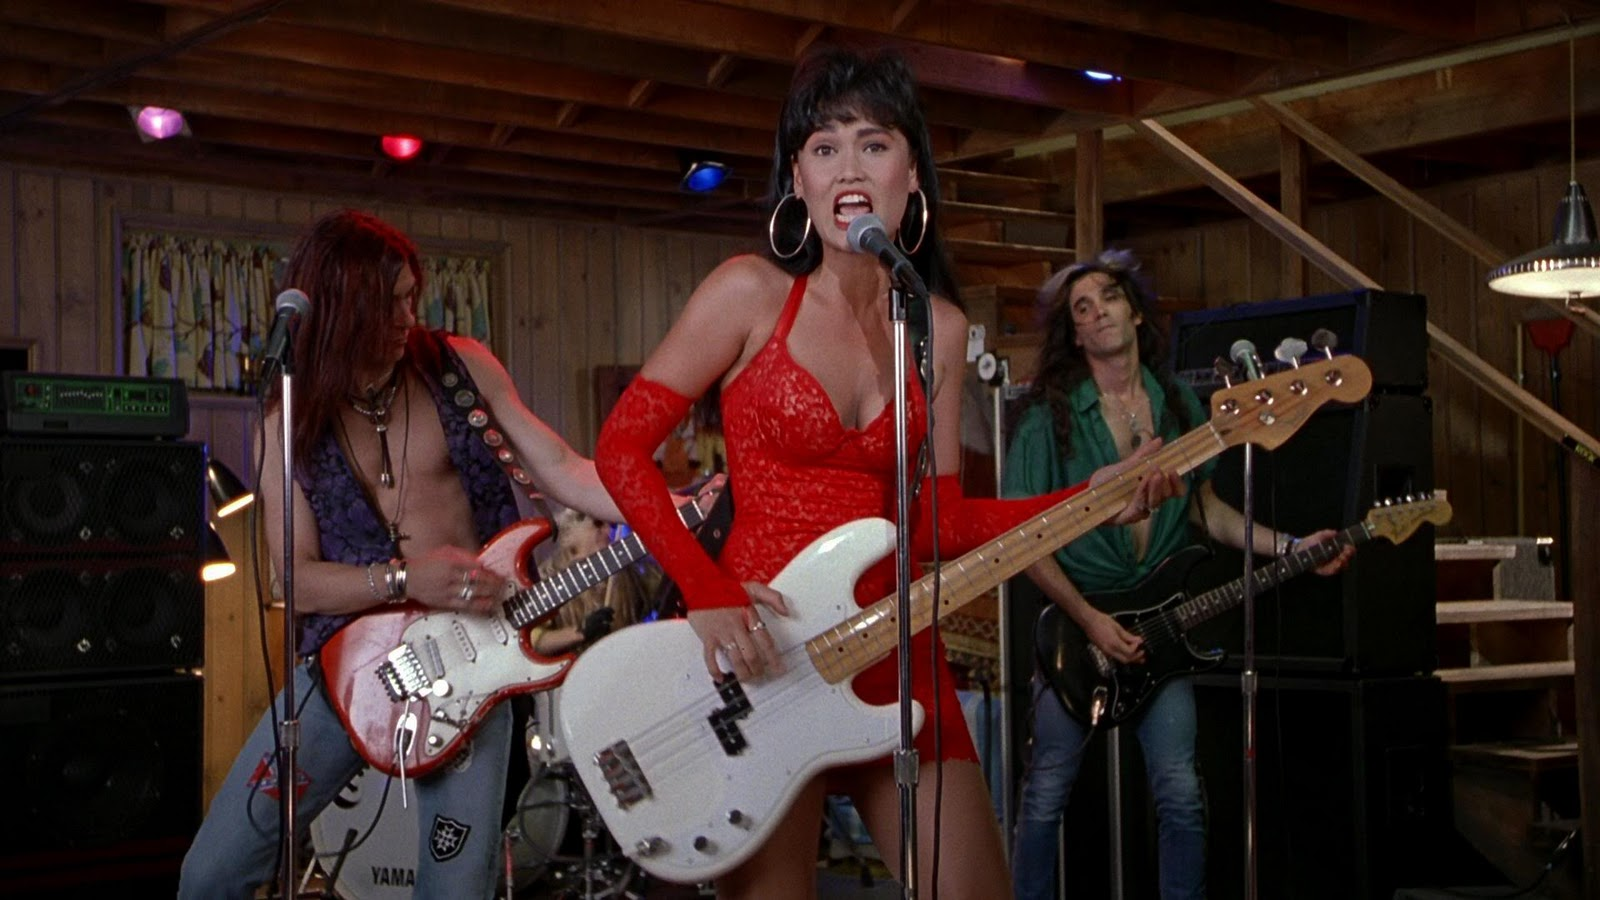 """Here's how to copy Tia Carerre's outfits in """"Wayne's World,"""" even though we're NOT WORTHY"""